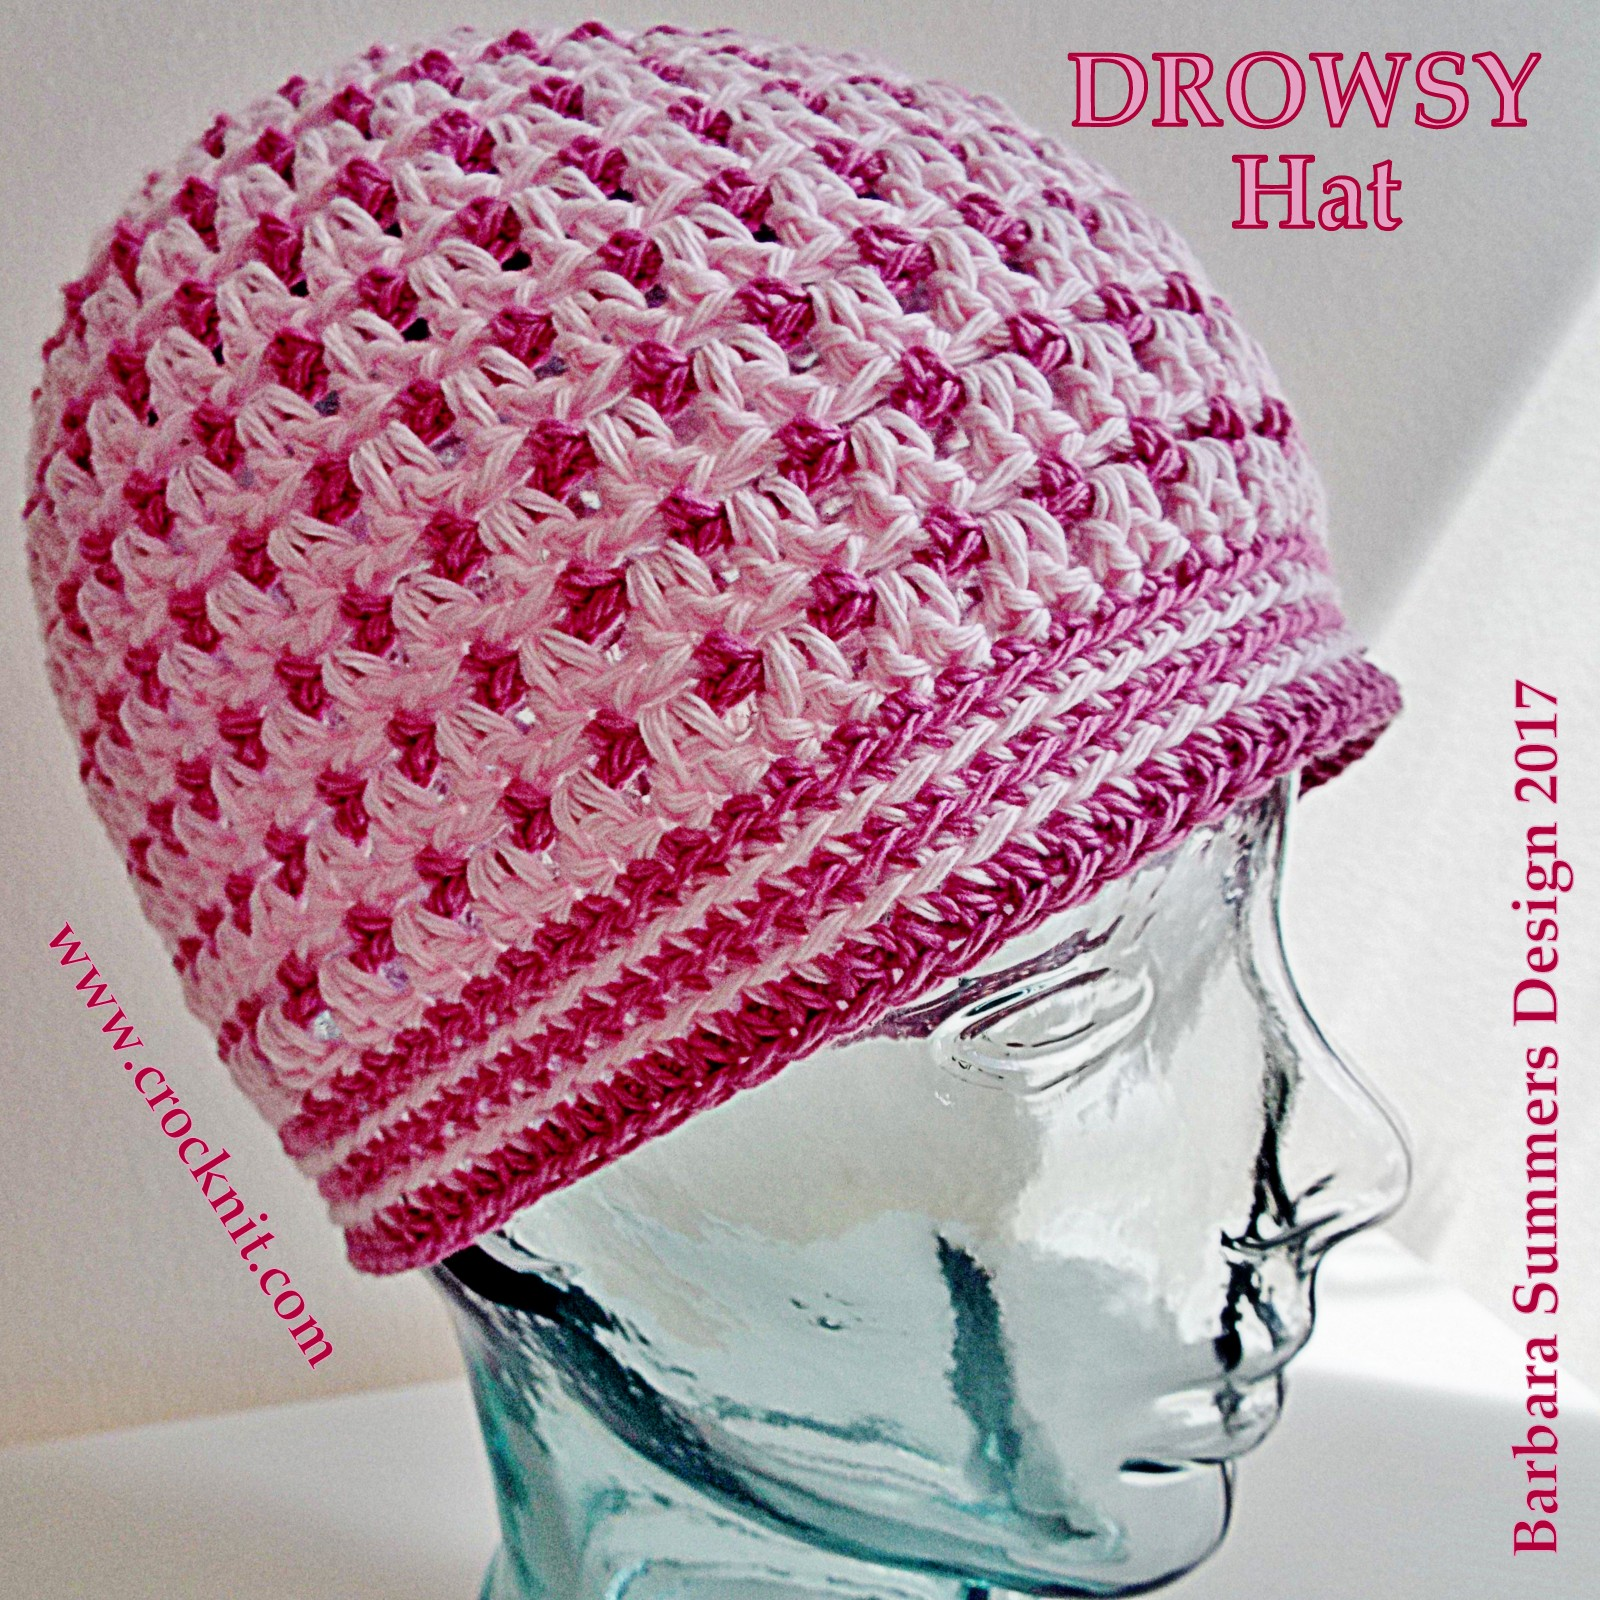 MICROCKNIT CREATIONS: SLEEP Hats Free Crochet Pattern #2 DROWSY HAT